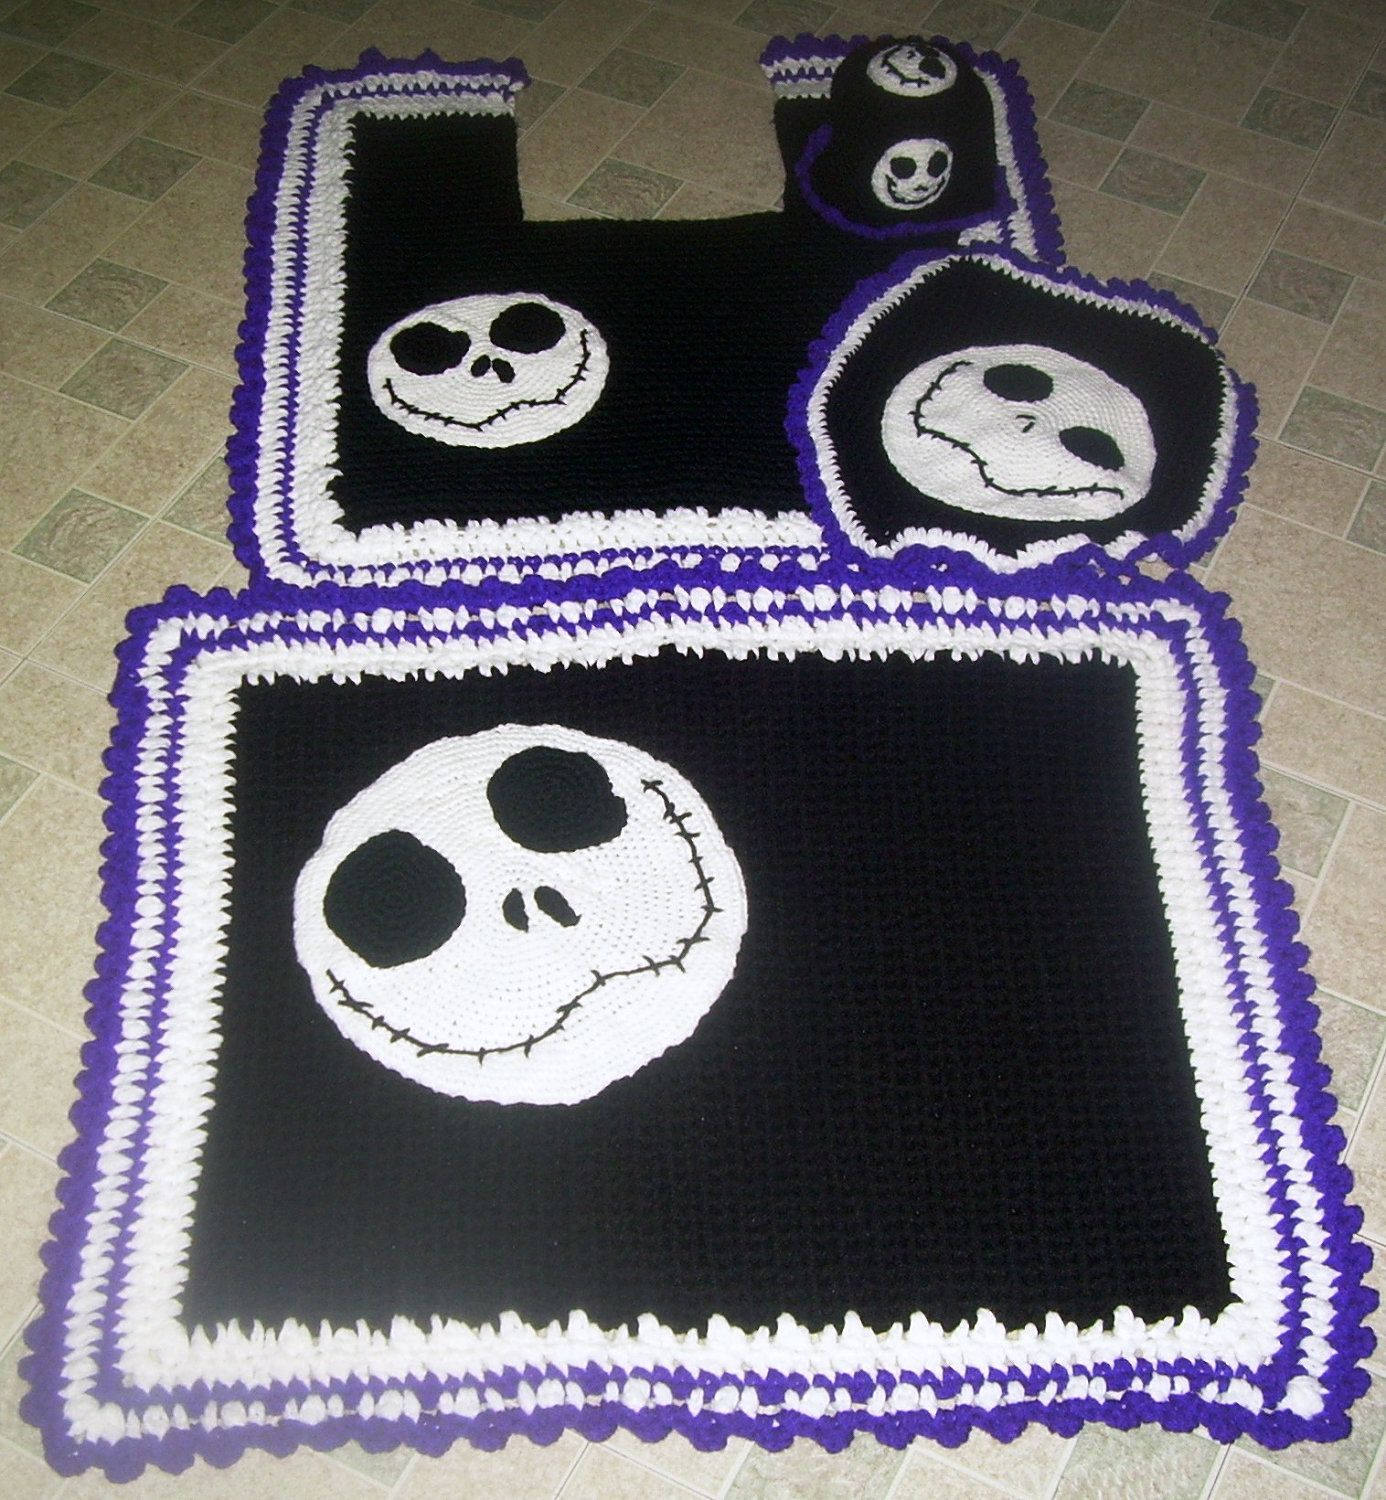 Jack skellington bathroom set - Jack Skellington Nightmare Before Christmas Bath Set 60 95 Via Etsy